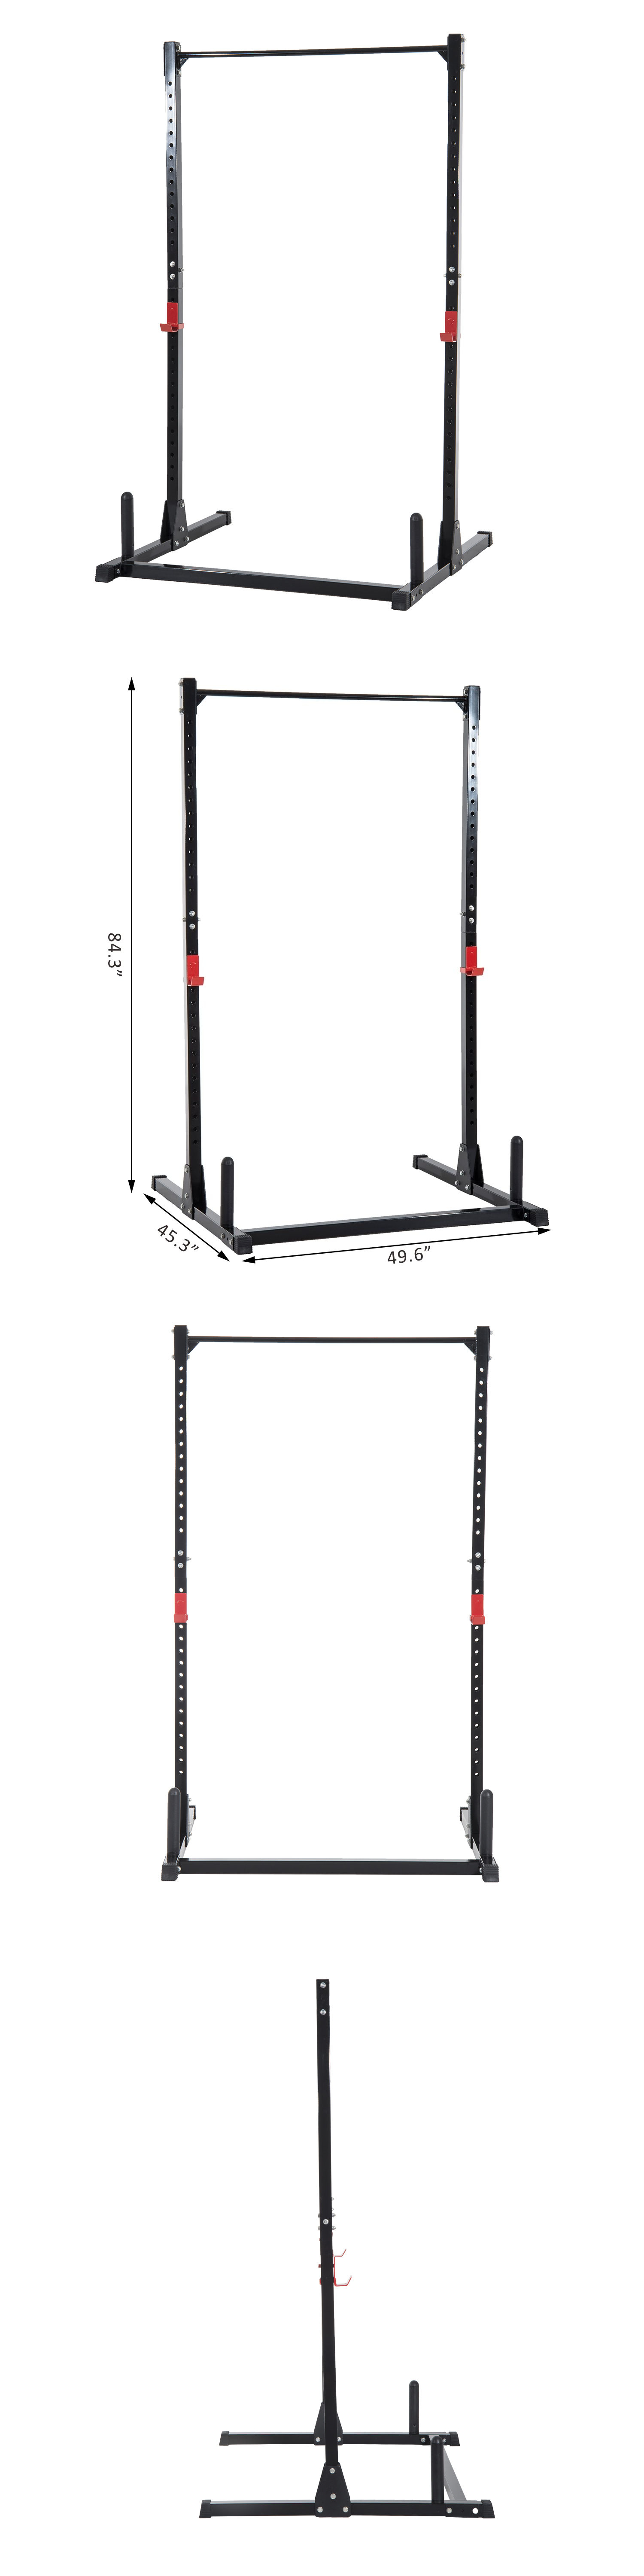 Pin on power racks and smith machines 179815